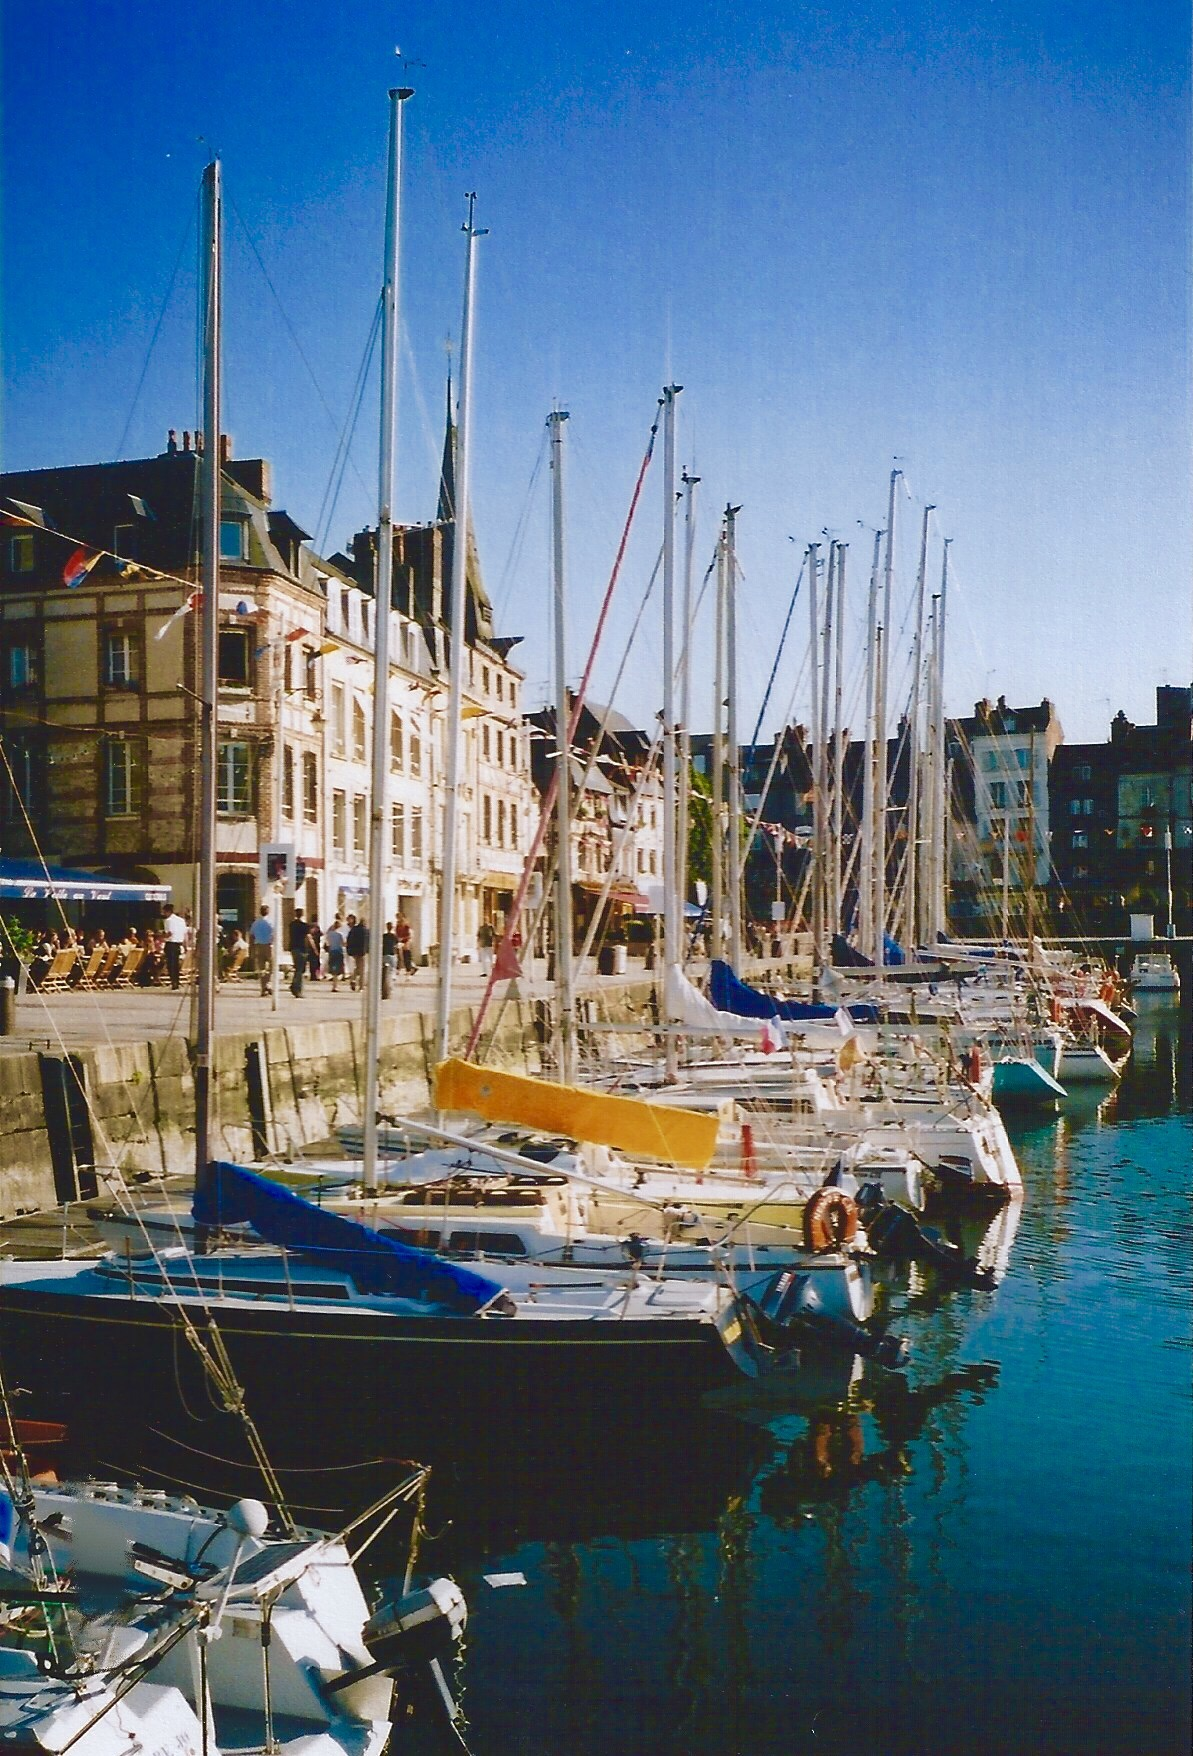 Honfleur Normandy, France